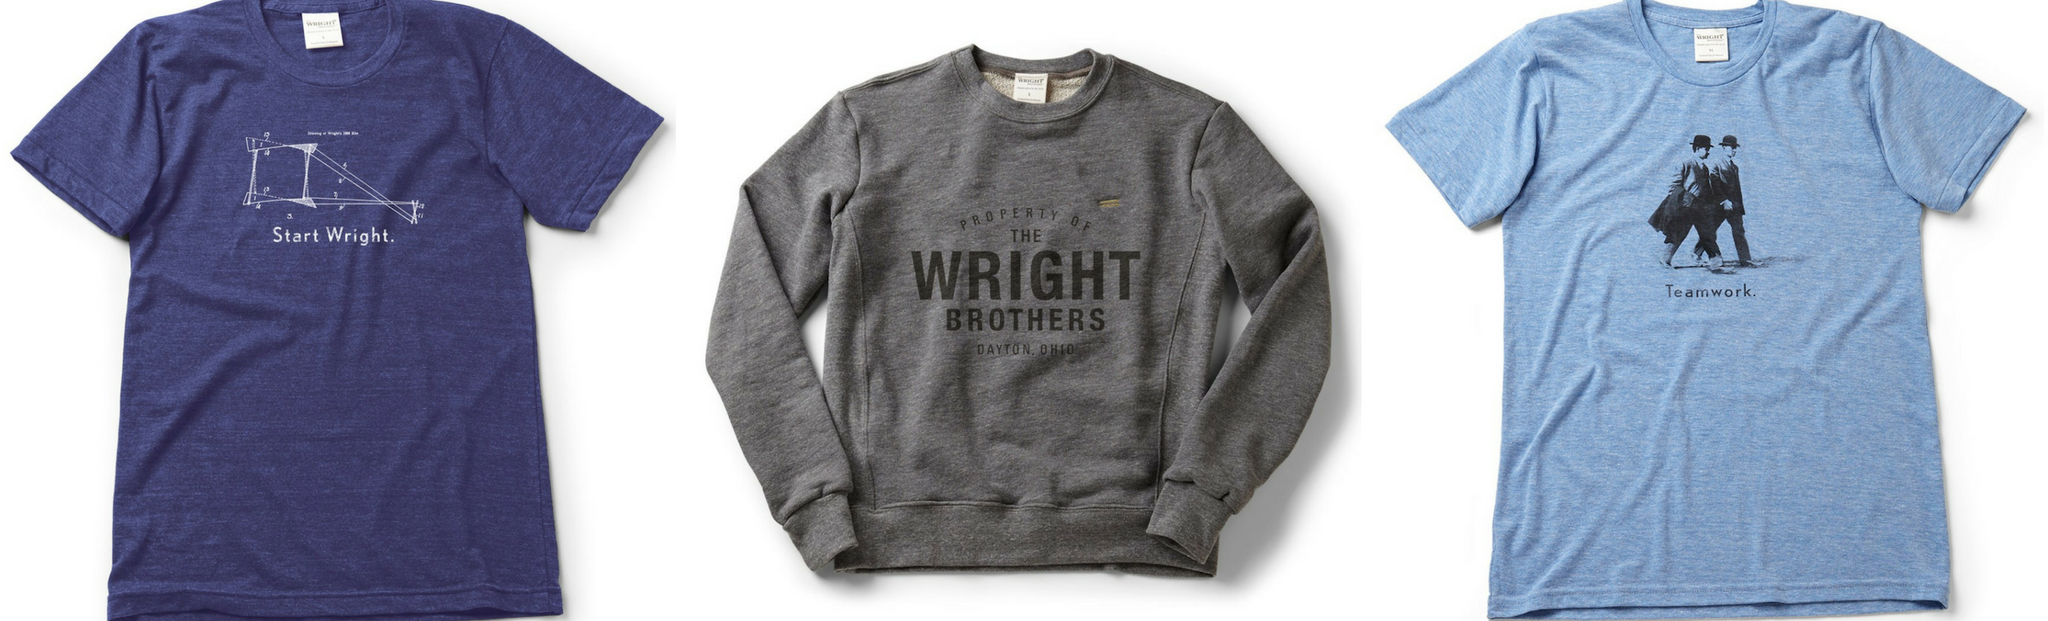 The Wright Brothers USA Shirts and Sweaters